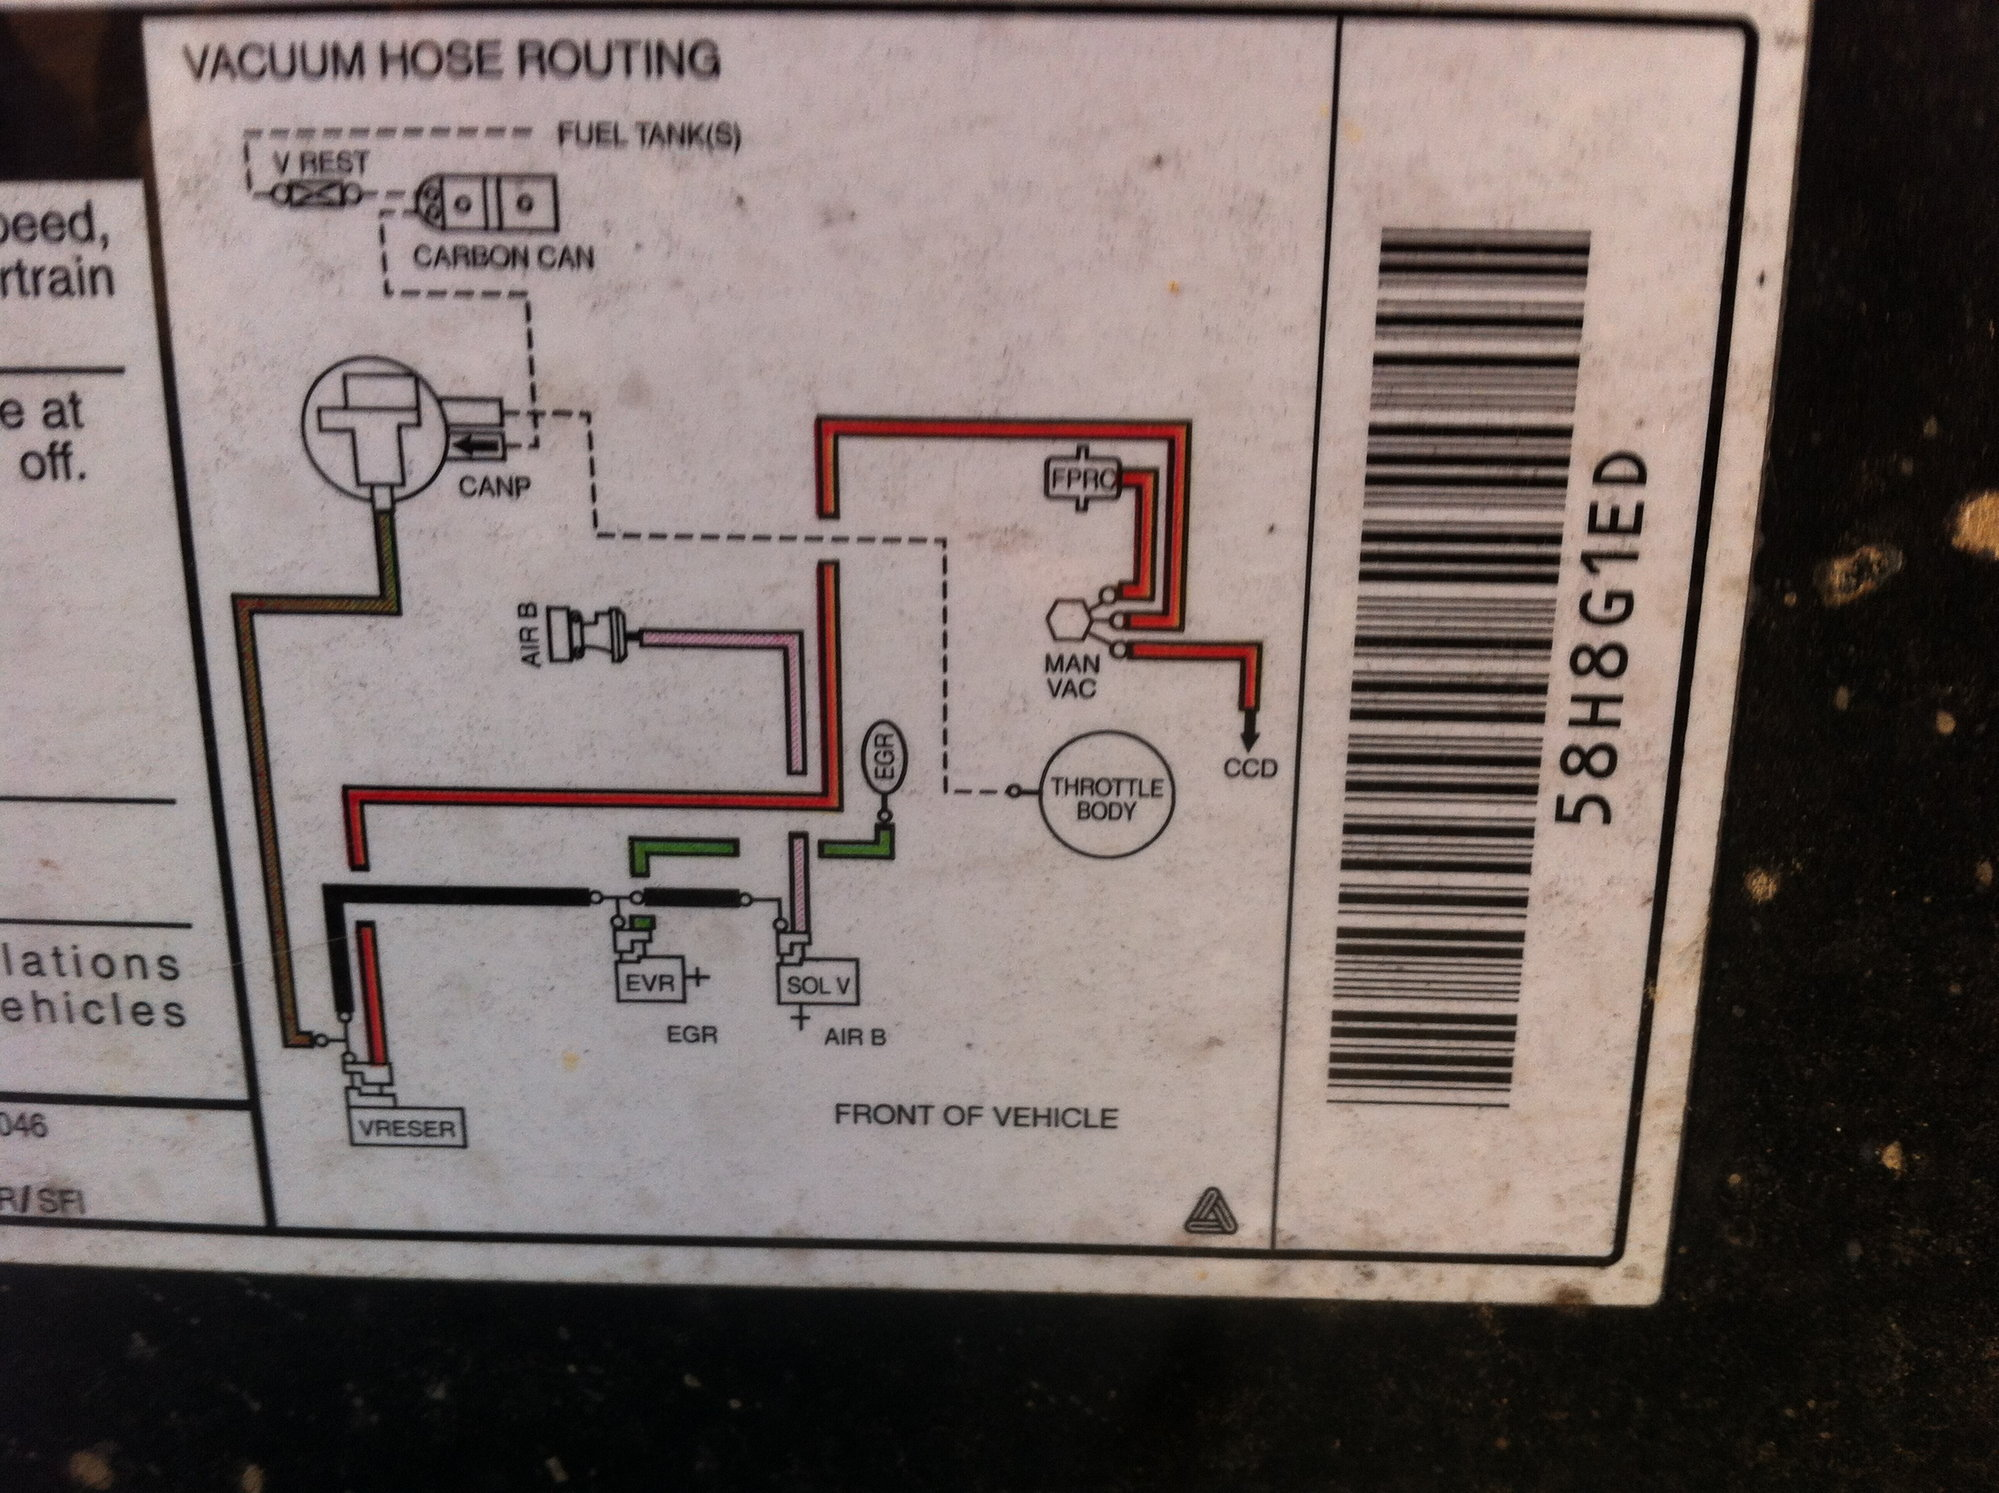 Ignition Wiring Diagram Together With Engine Vacuum Line Diagram